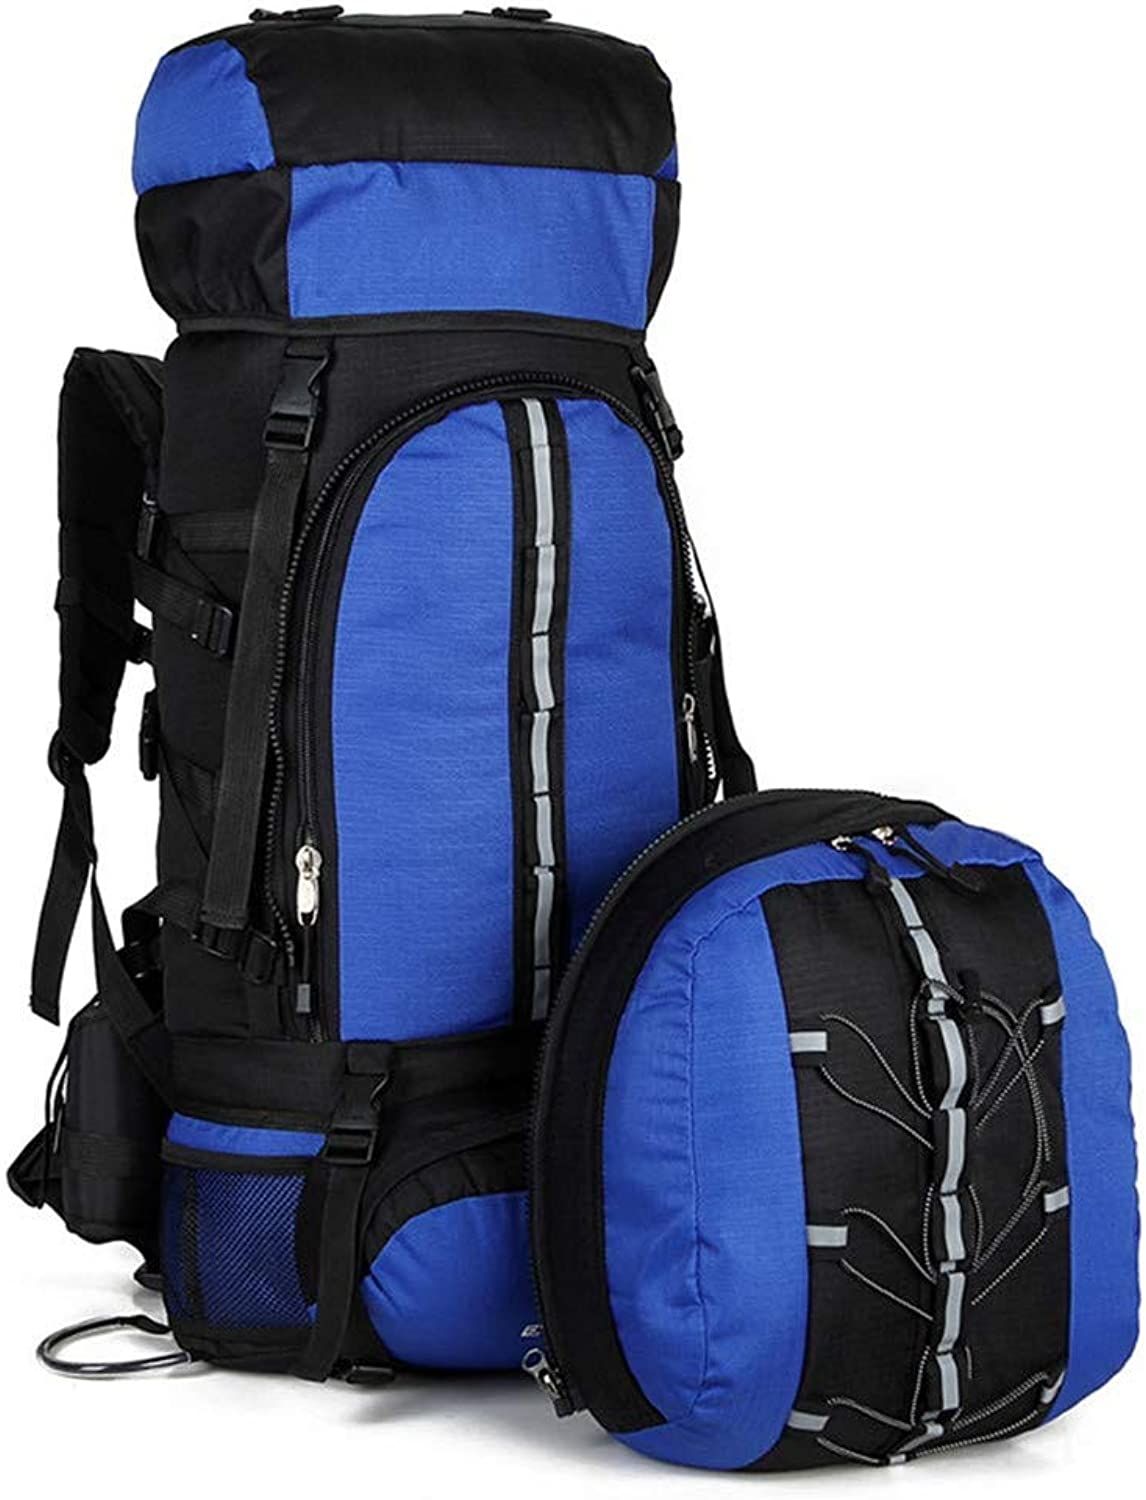 Hiking Backpack, Waterproof 80L Internal Frame Backpack, Lightweight Professional Outdoor Sports Backpack for Camping Fishing Cycling Skiing.